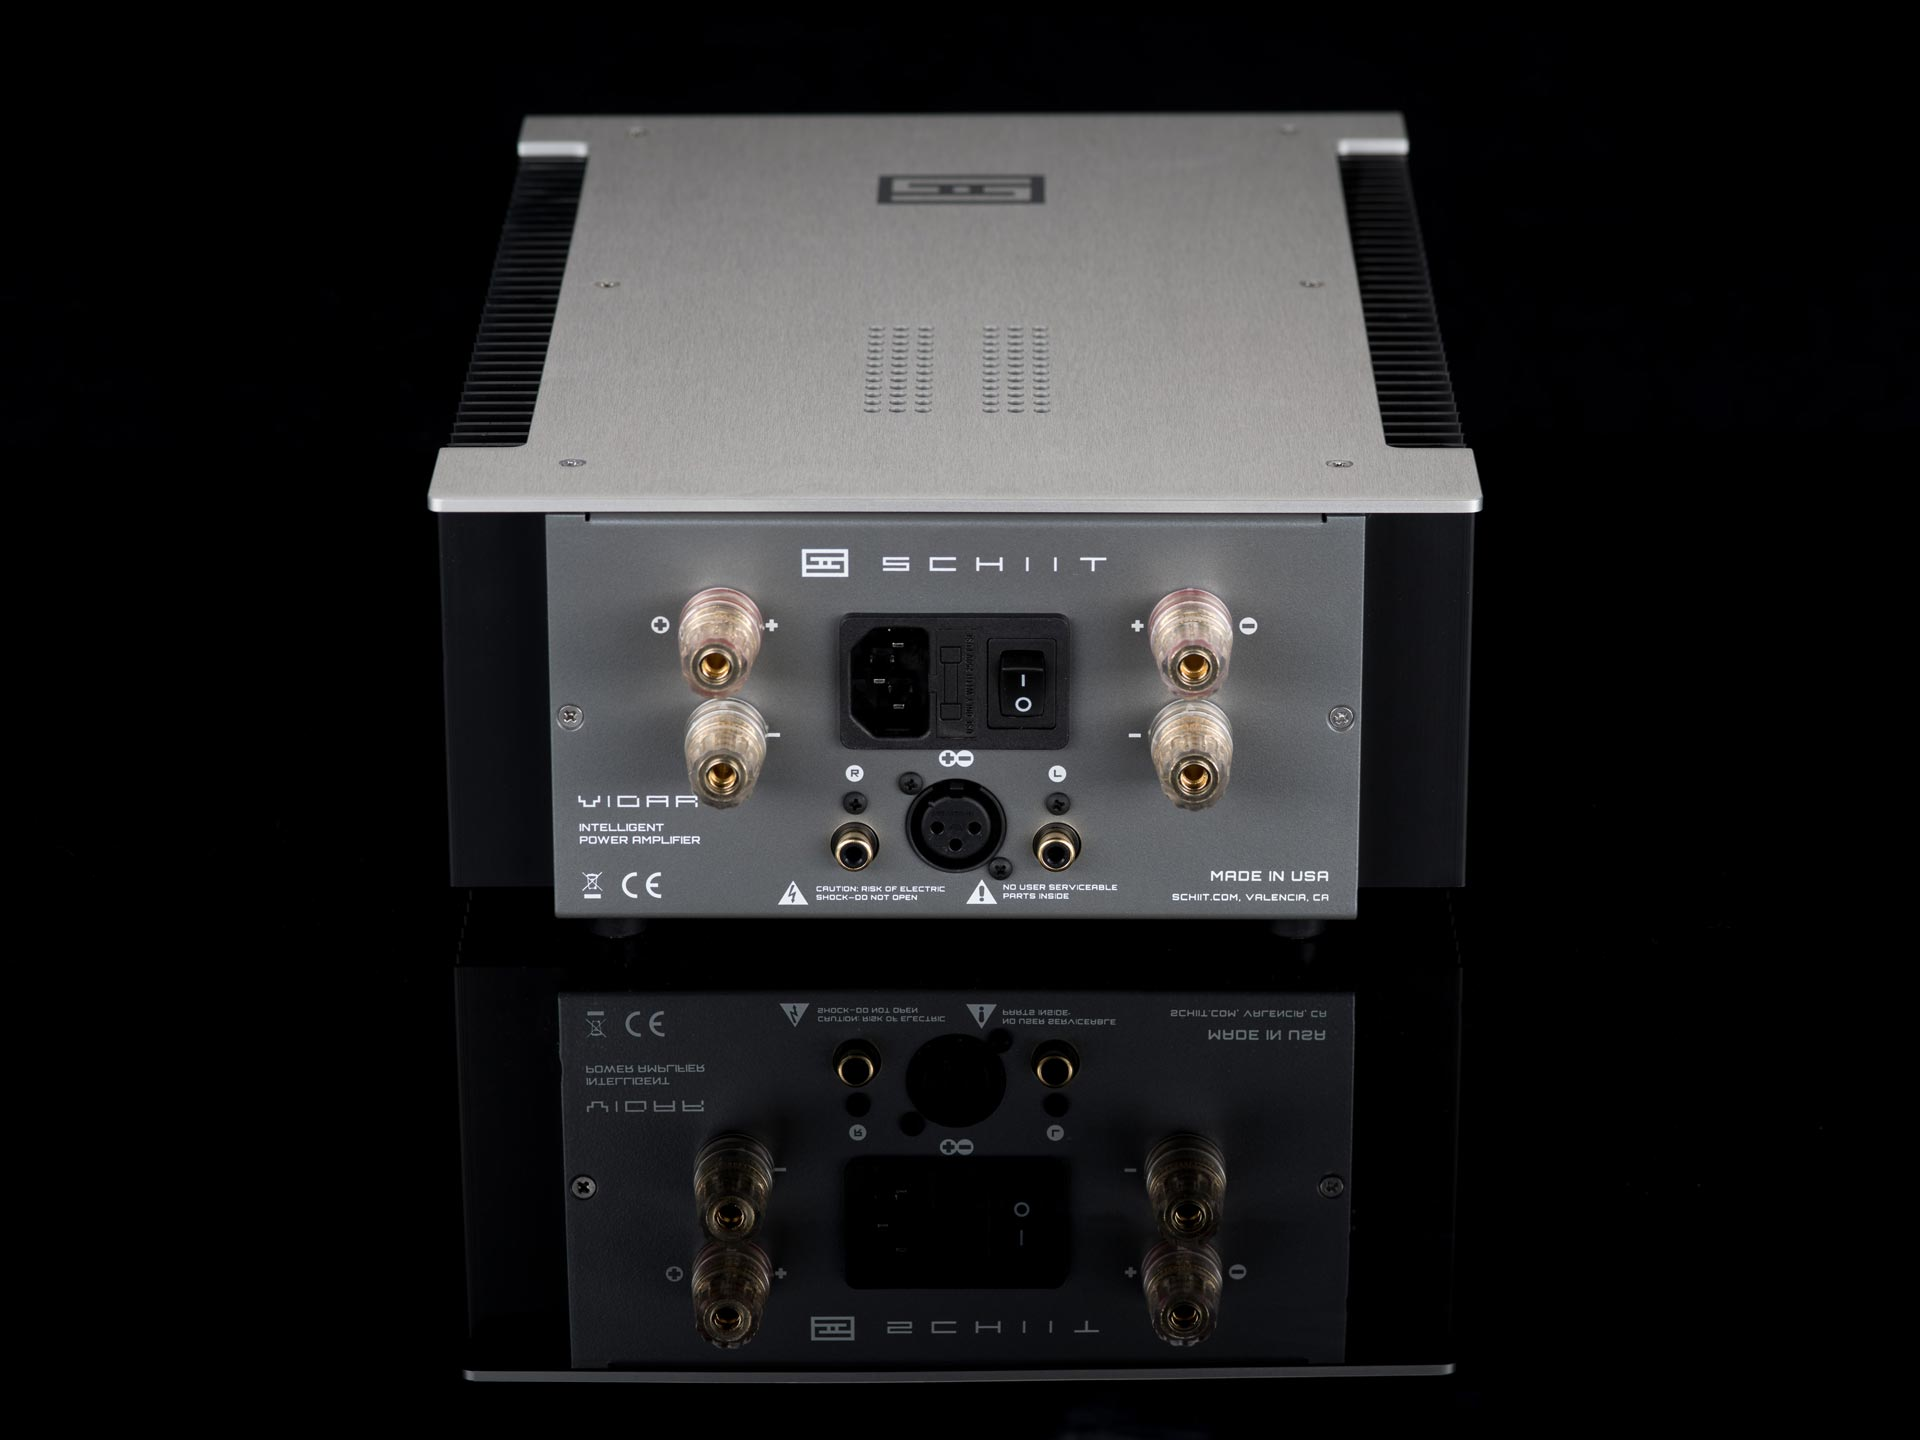 Schiit Audio Headphone Amps And Dacs Made In Usa Usb Powered Power Amplifier Vidar Intelligent Stereo Mono